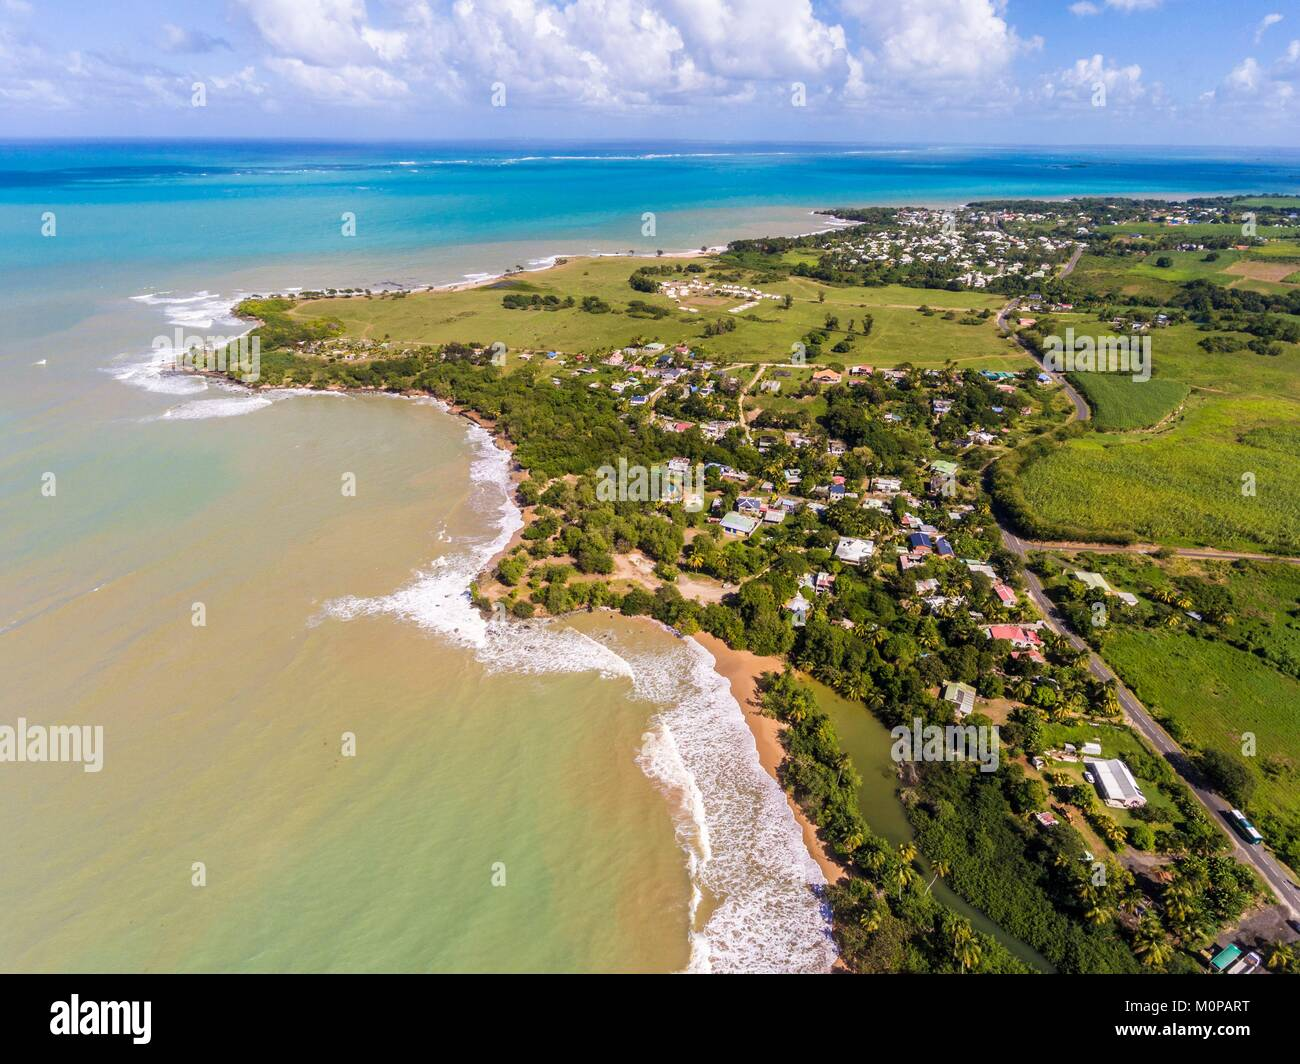 France,Caribbean,Lesser Antilles,Guadeloupe,Basse-Terre,Sainte-Rose,aerial view of Cluny beach and Grand Cul-de - Stock Image